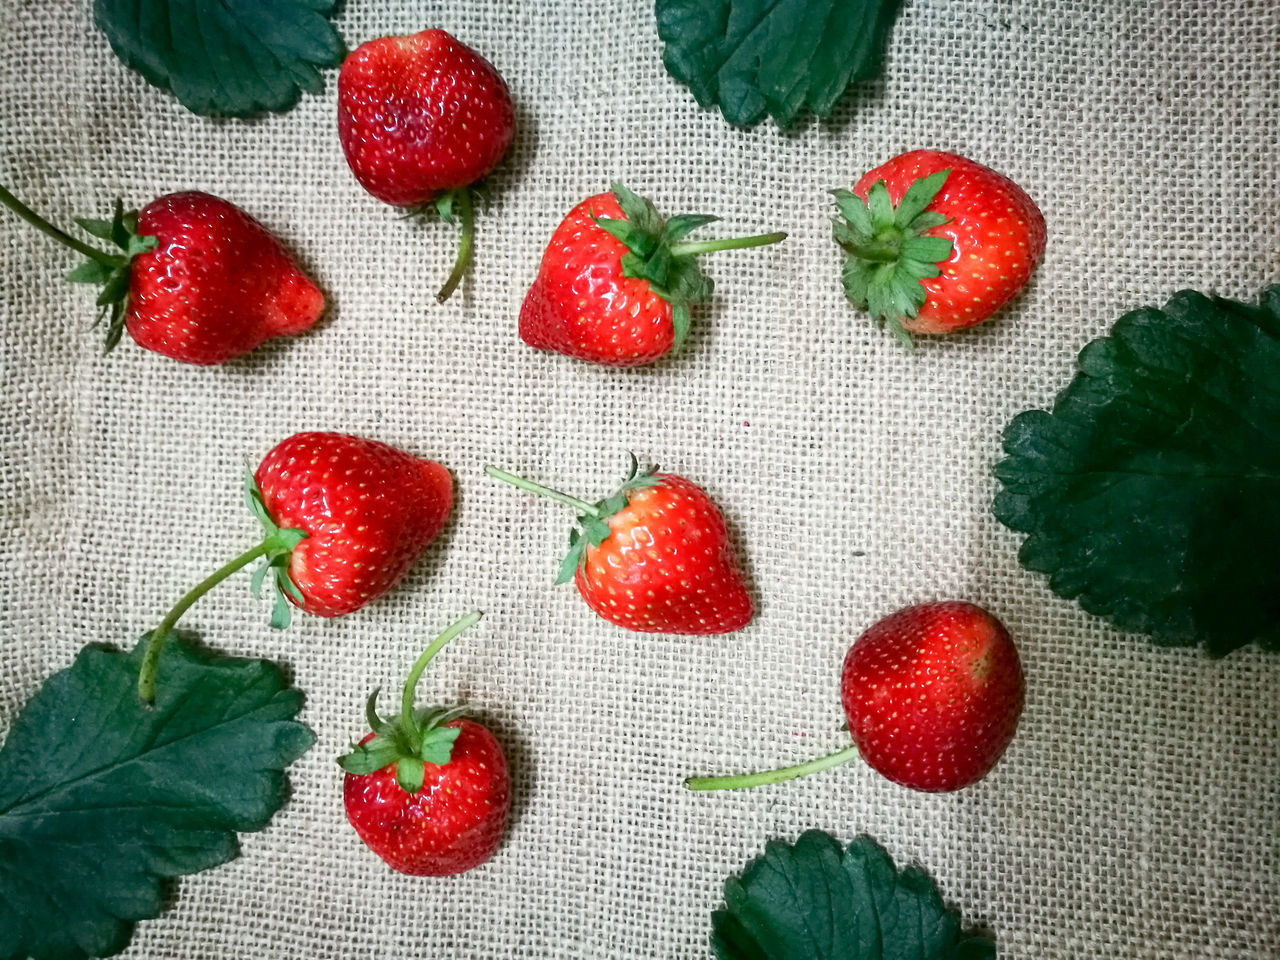 Strawberries Red Freshness Fruit Food Healthy Eating Berry Fruit Dietfood